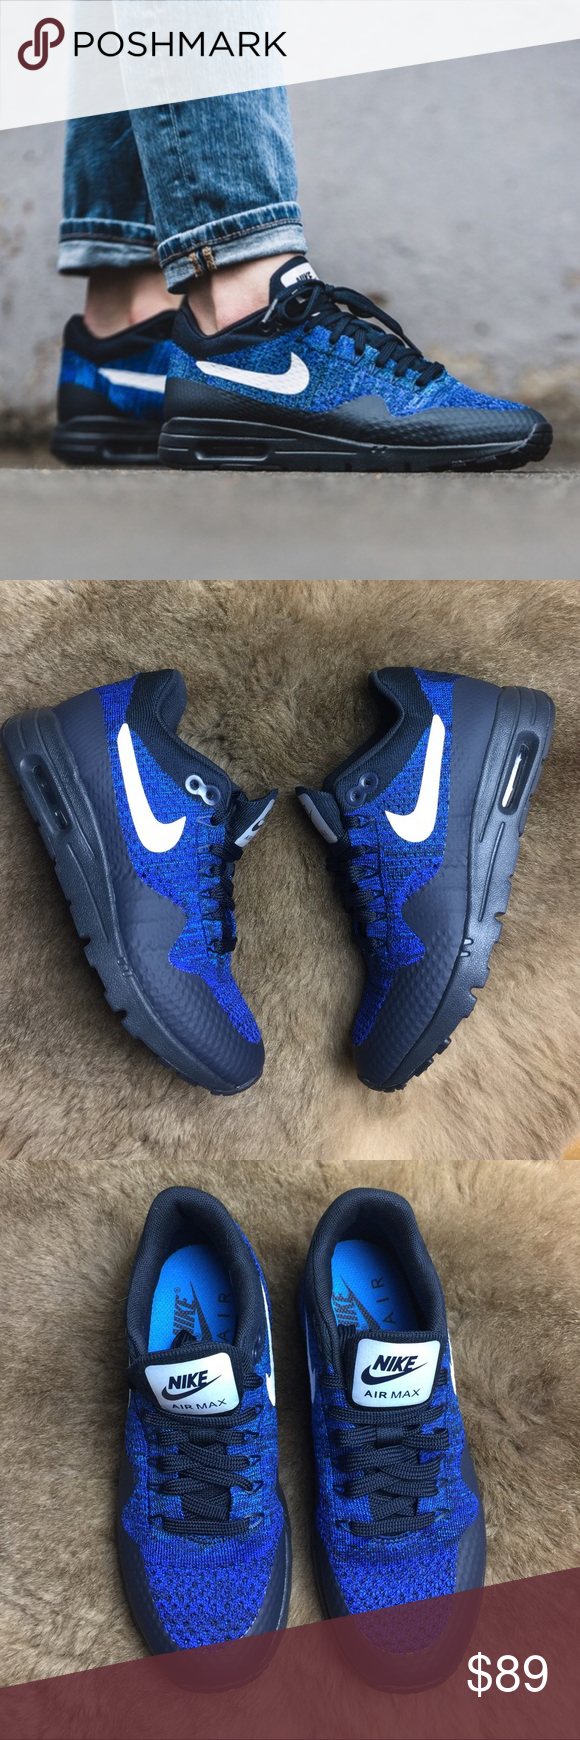 uk availability 0df39 592f6 NWT air max ultra flyknit Brand new no box price is firm 160  original price